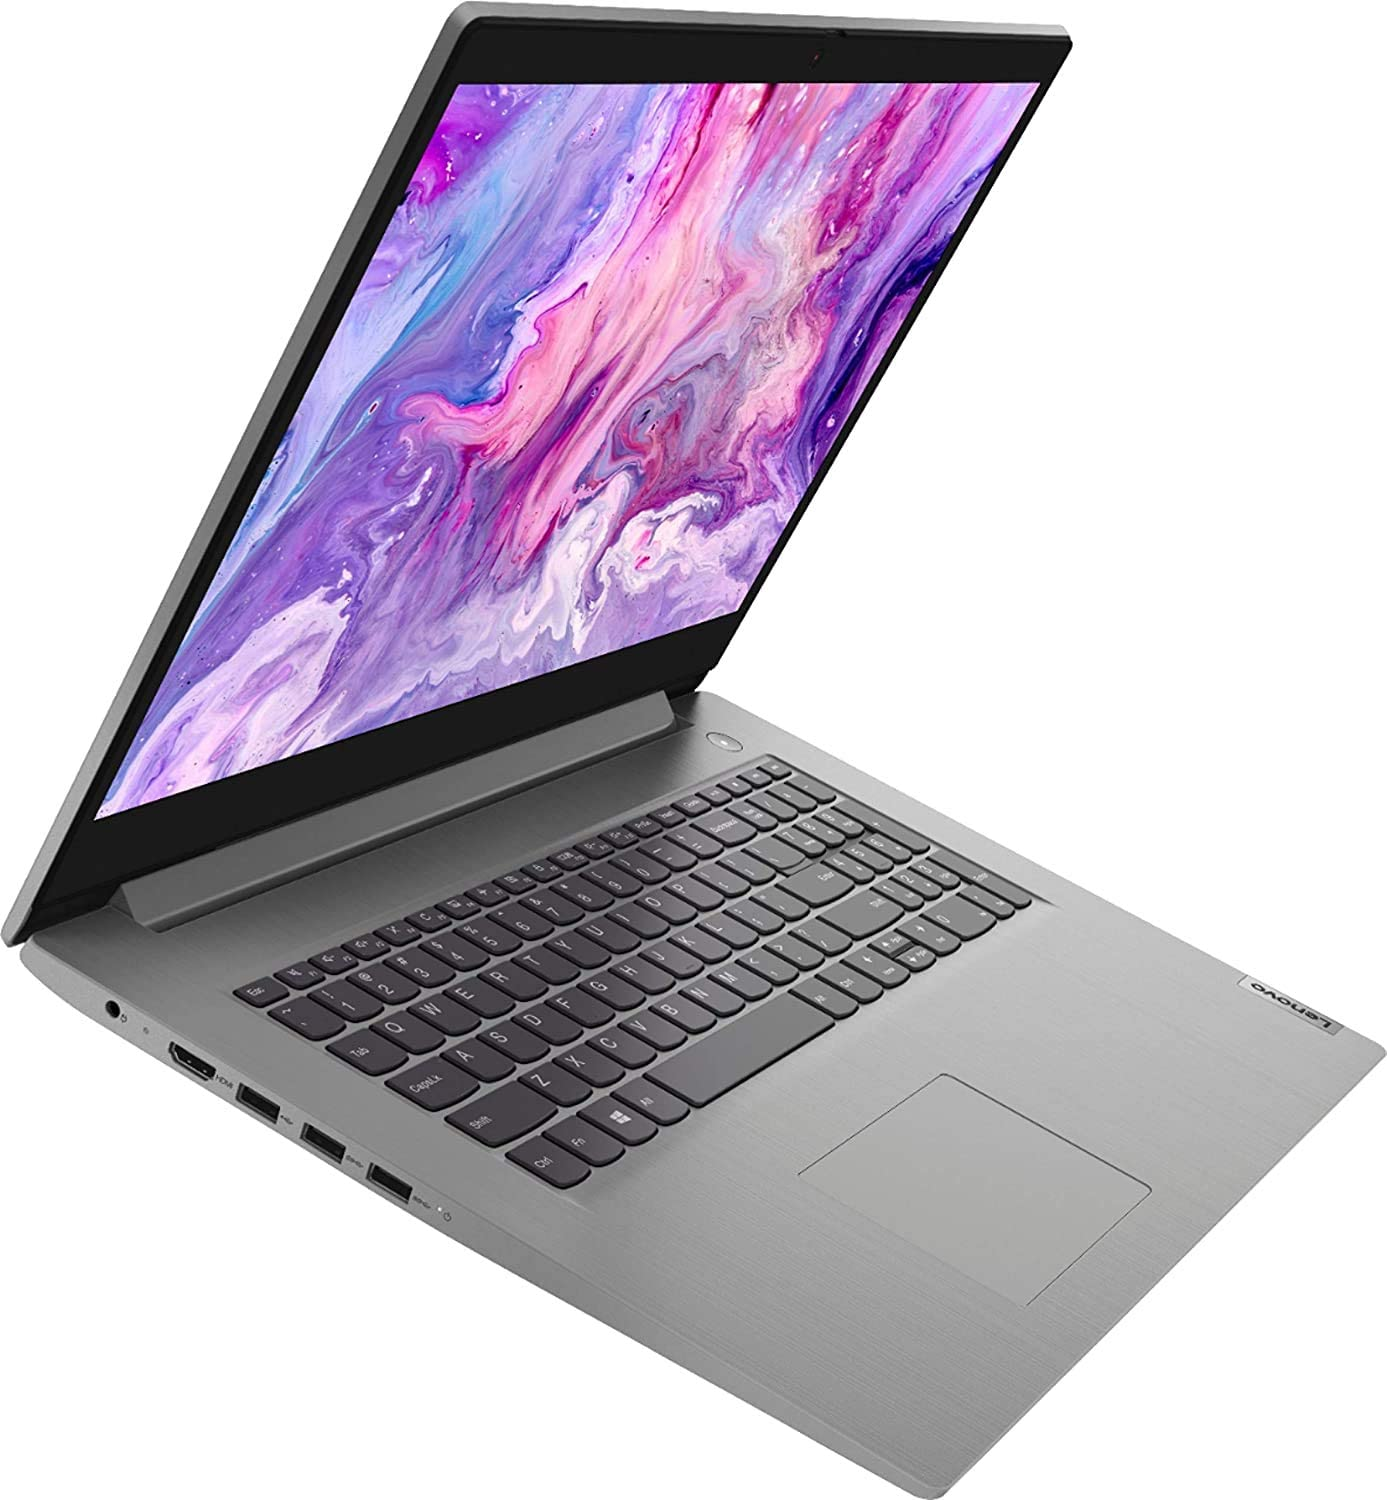 2020 Flagship Lenovo IdeaPad 3 17 Laptop 17.3